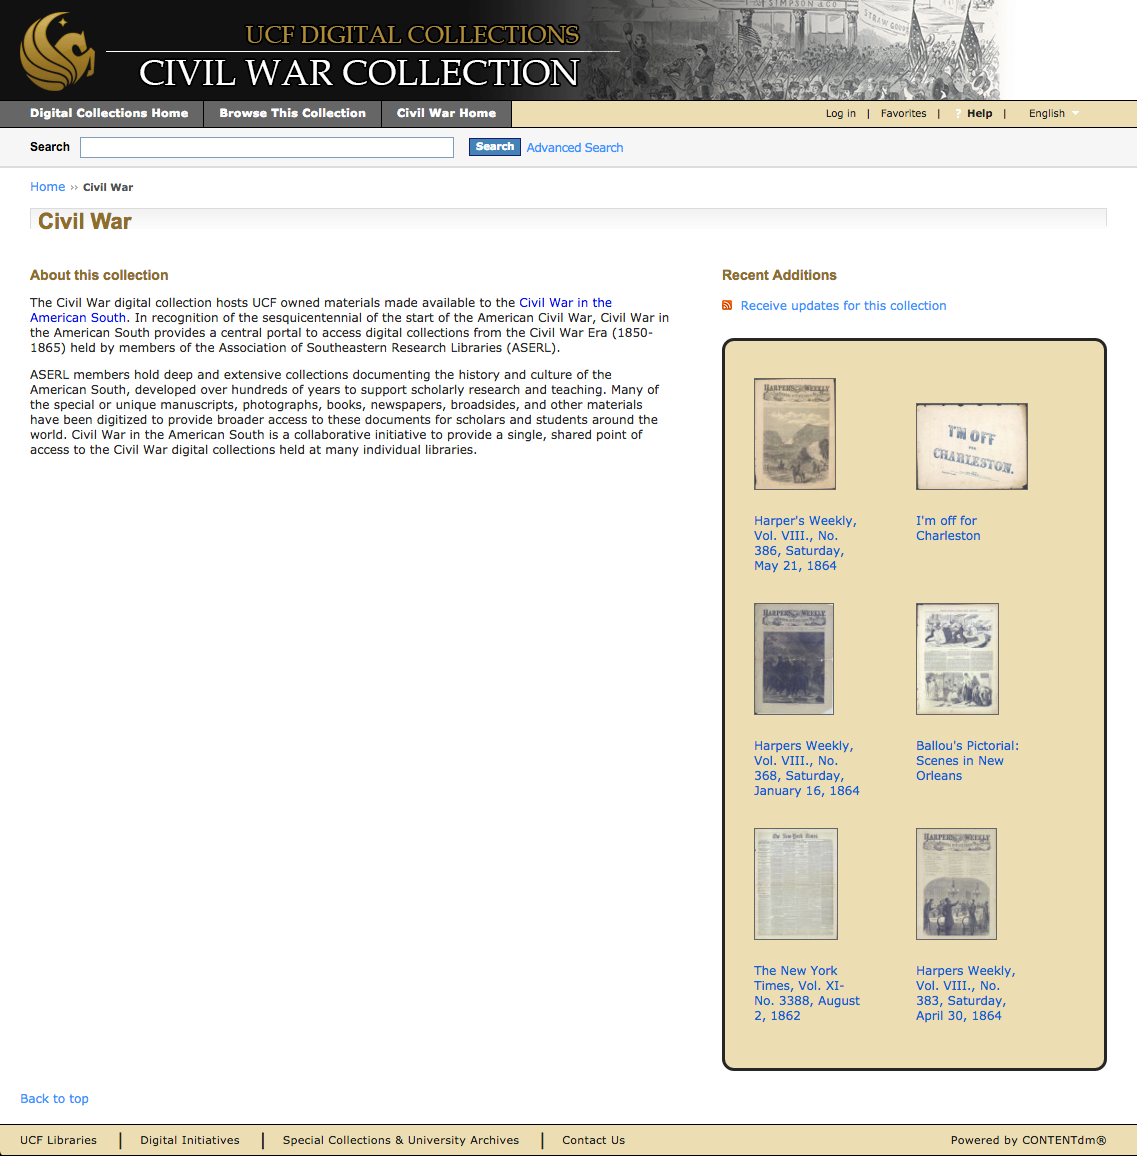 Landing page for the UCF Civil War Collection